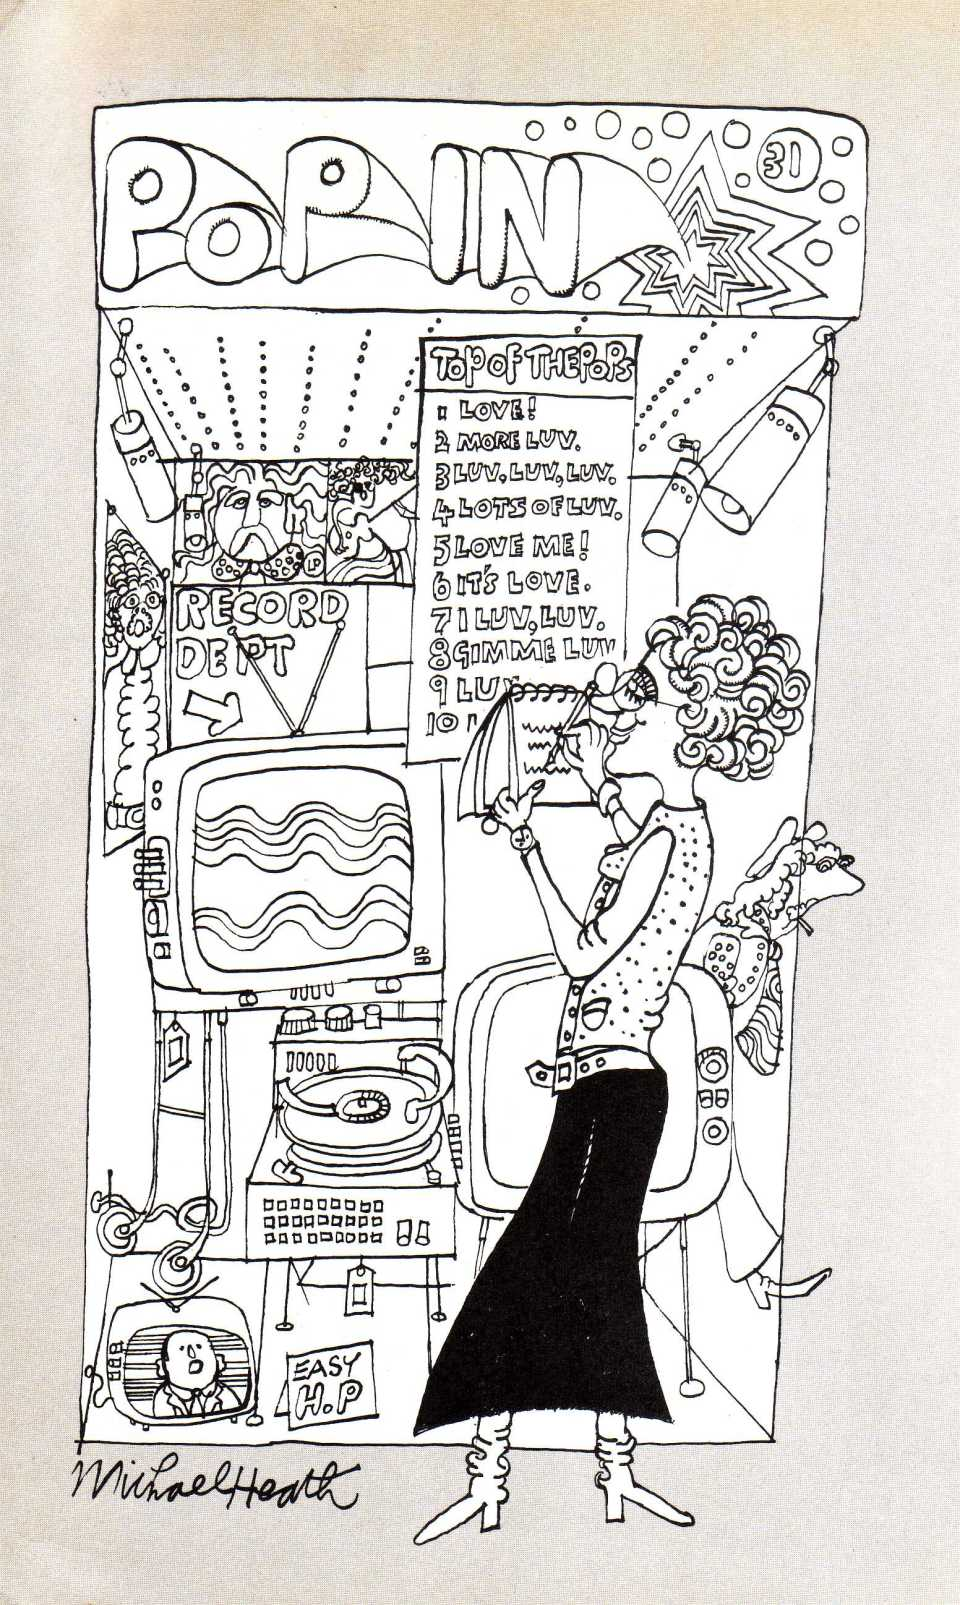 (From the book) I'm loving it: Michael Heath's cartoon from the inside front cover..